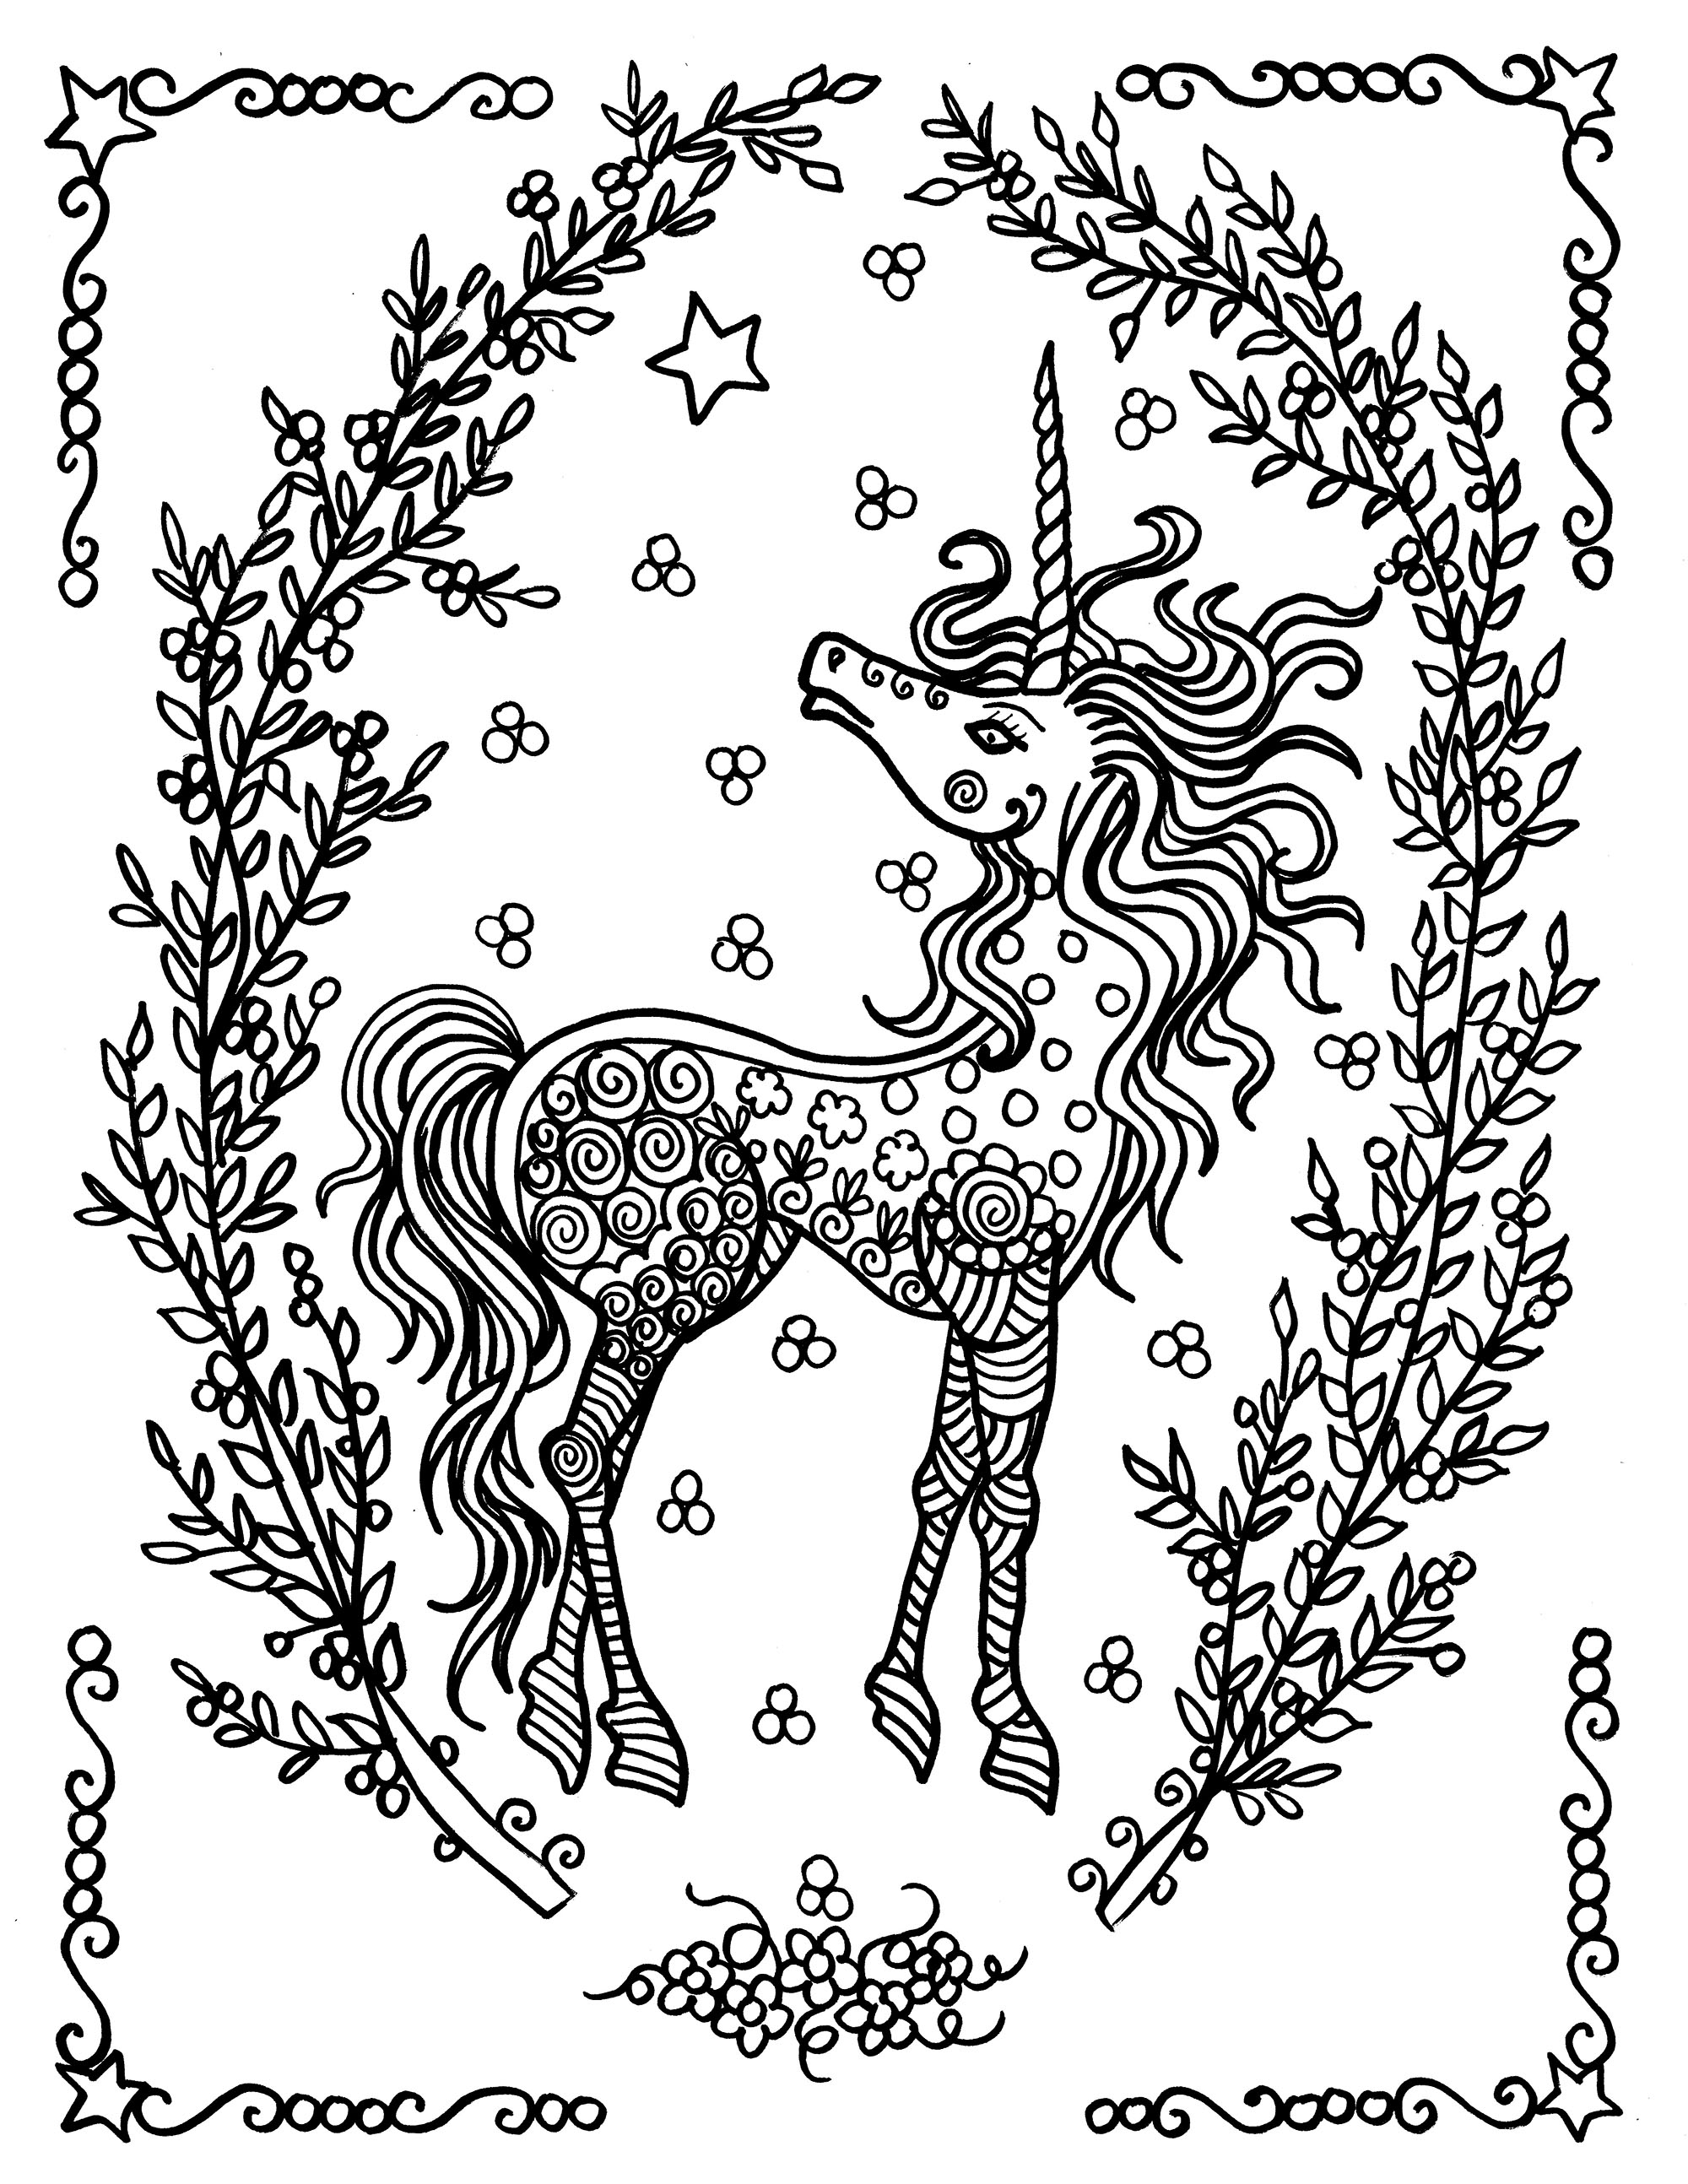 Unicorn coloring pages to print - Coloring Page Unicorn By Deborah Muller Free To Print